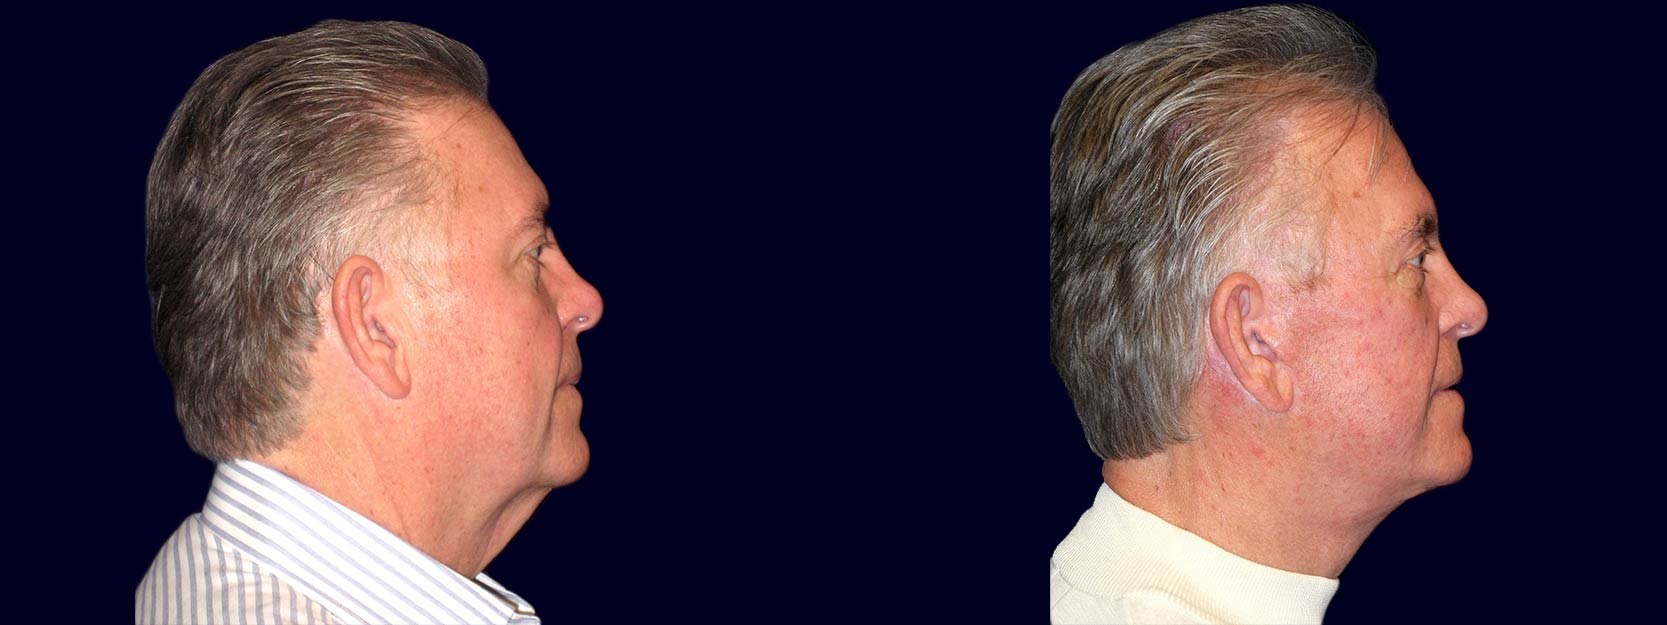 Right Profile View - Facelift, Eyelid Surgery, & Browlift